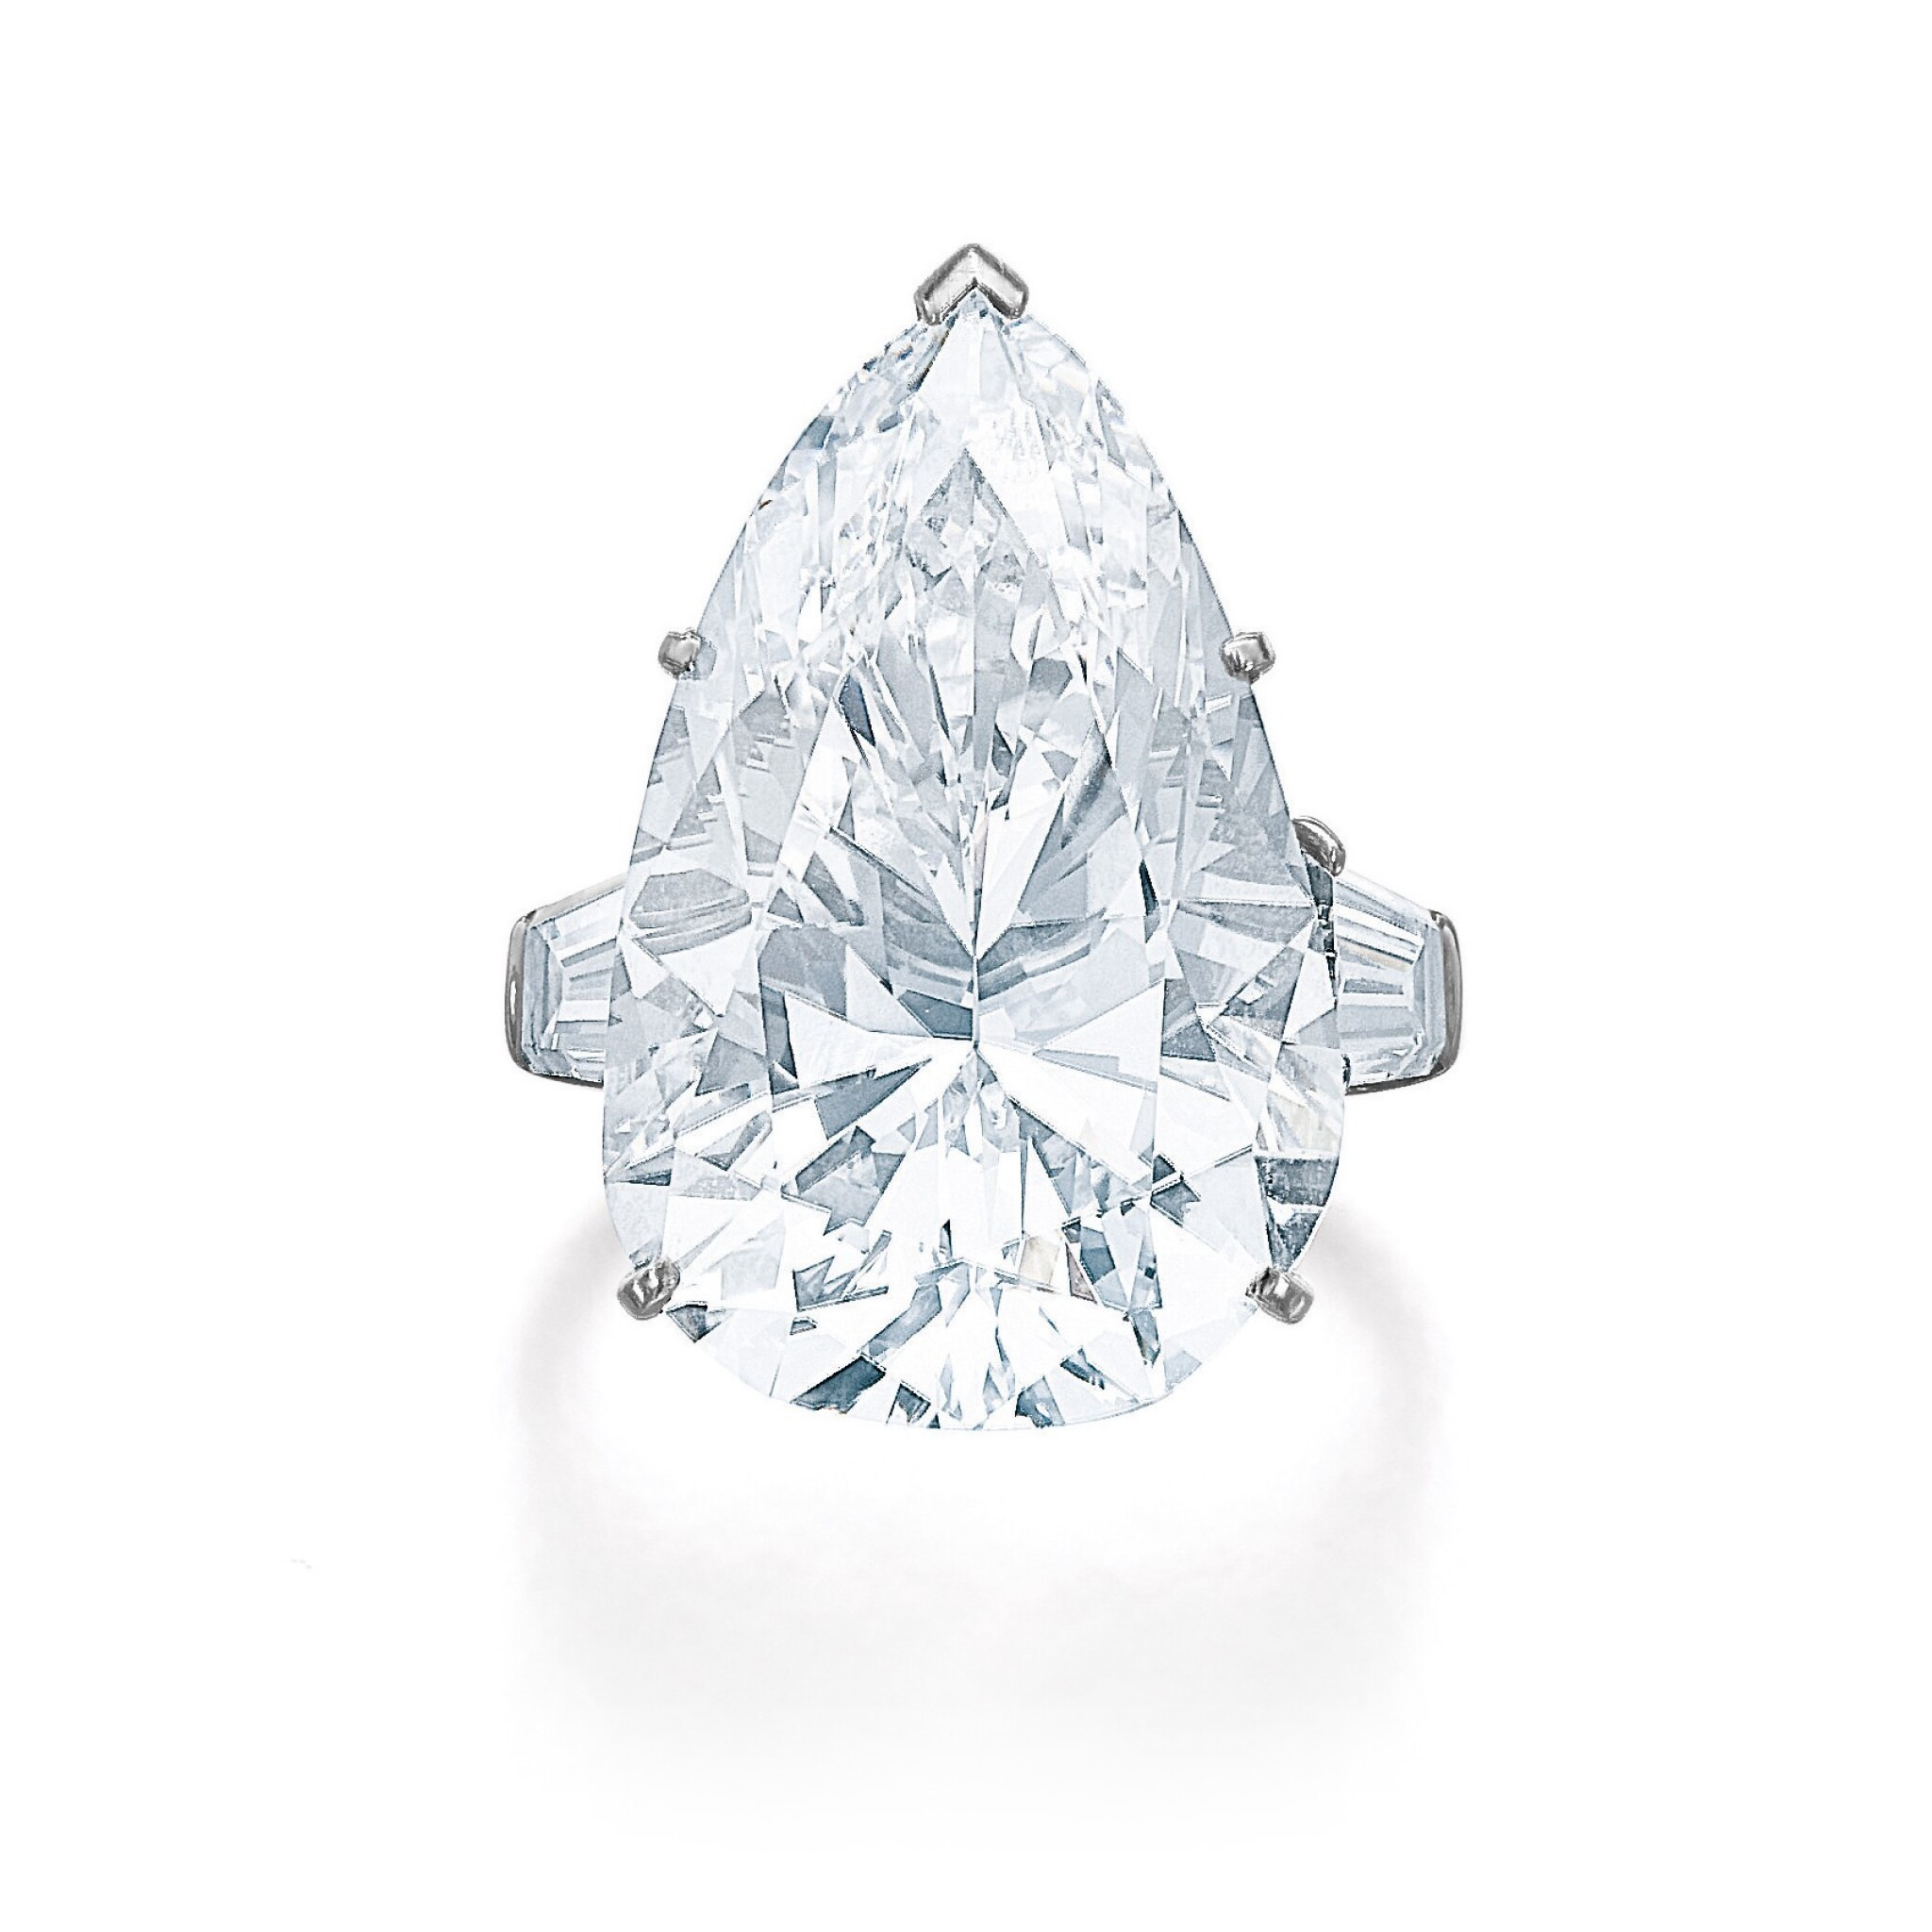 HARRY WINSTON [海瑞溫斯頓] | IMPORTANT DIAMOND RING, CIRCA 1970 [重要鑽石戒指,約1970年]